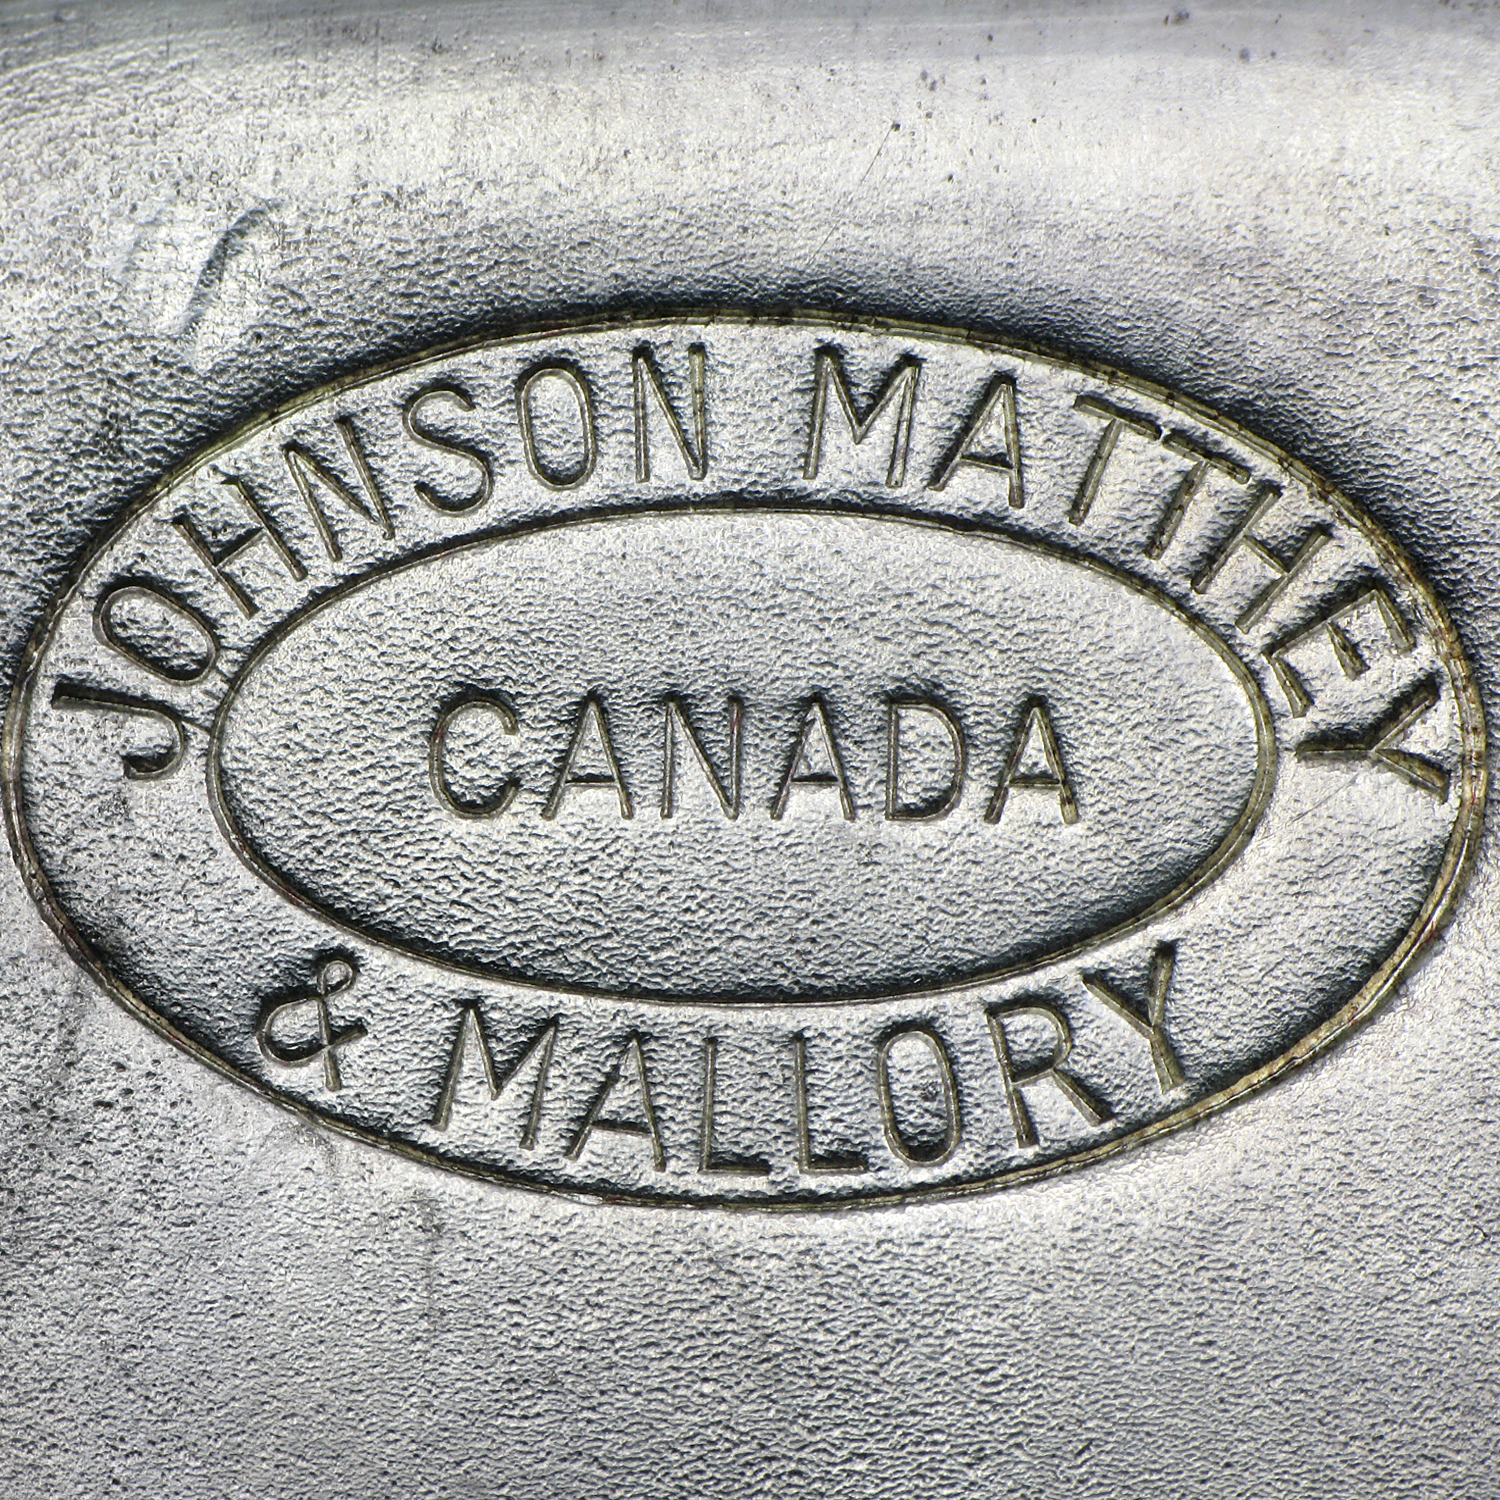 1 Kilo Silver Bars - Johnson Matthey & Mallory (w/o stamp)